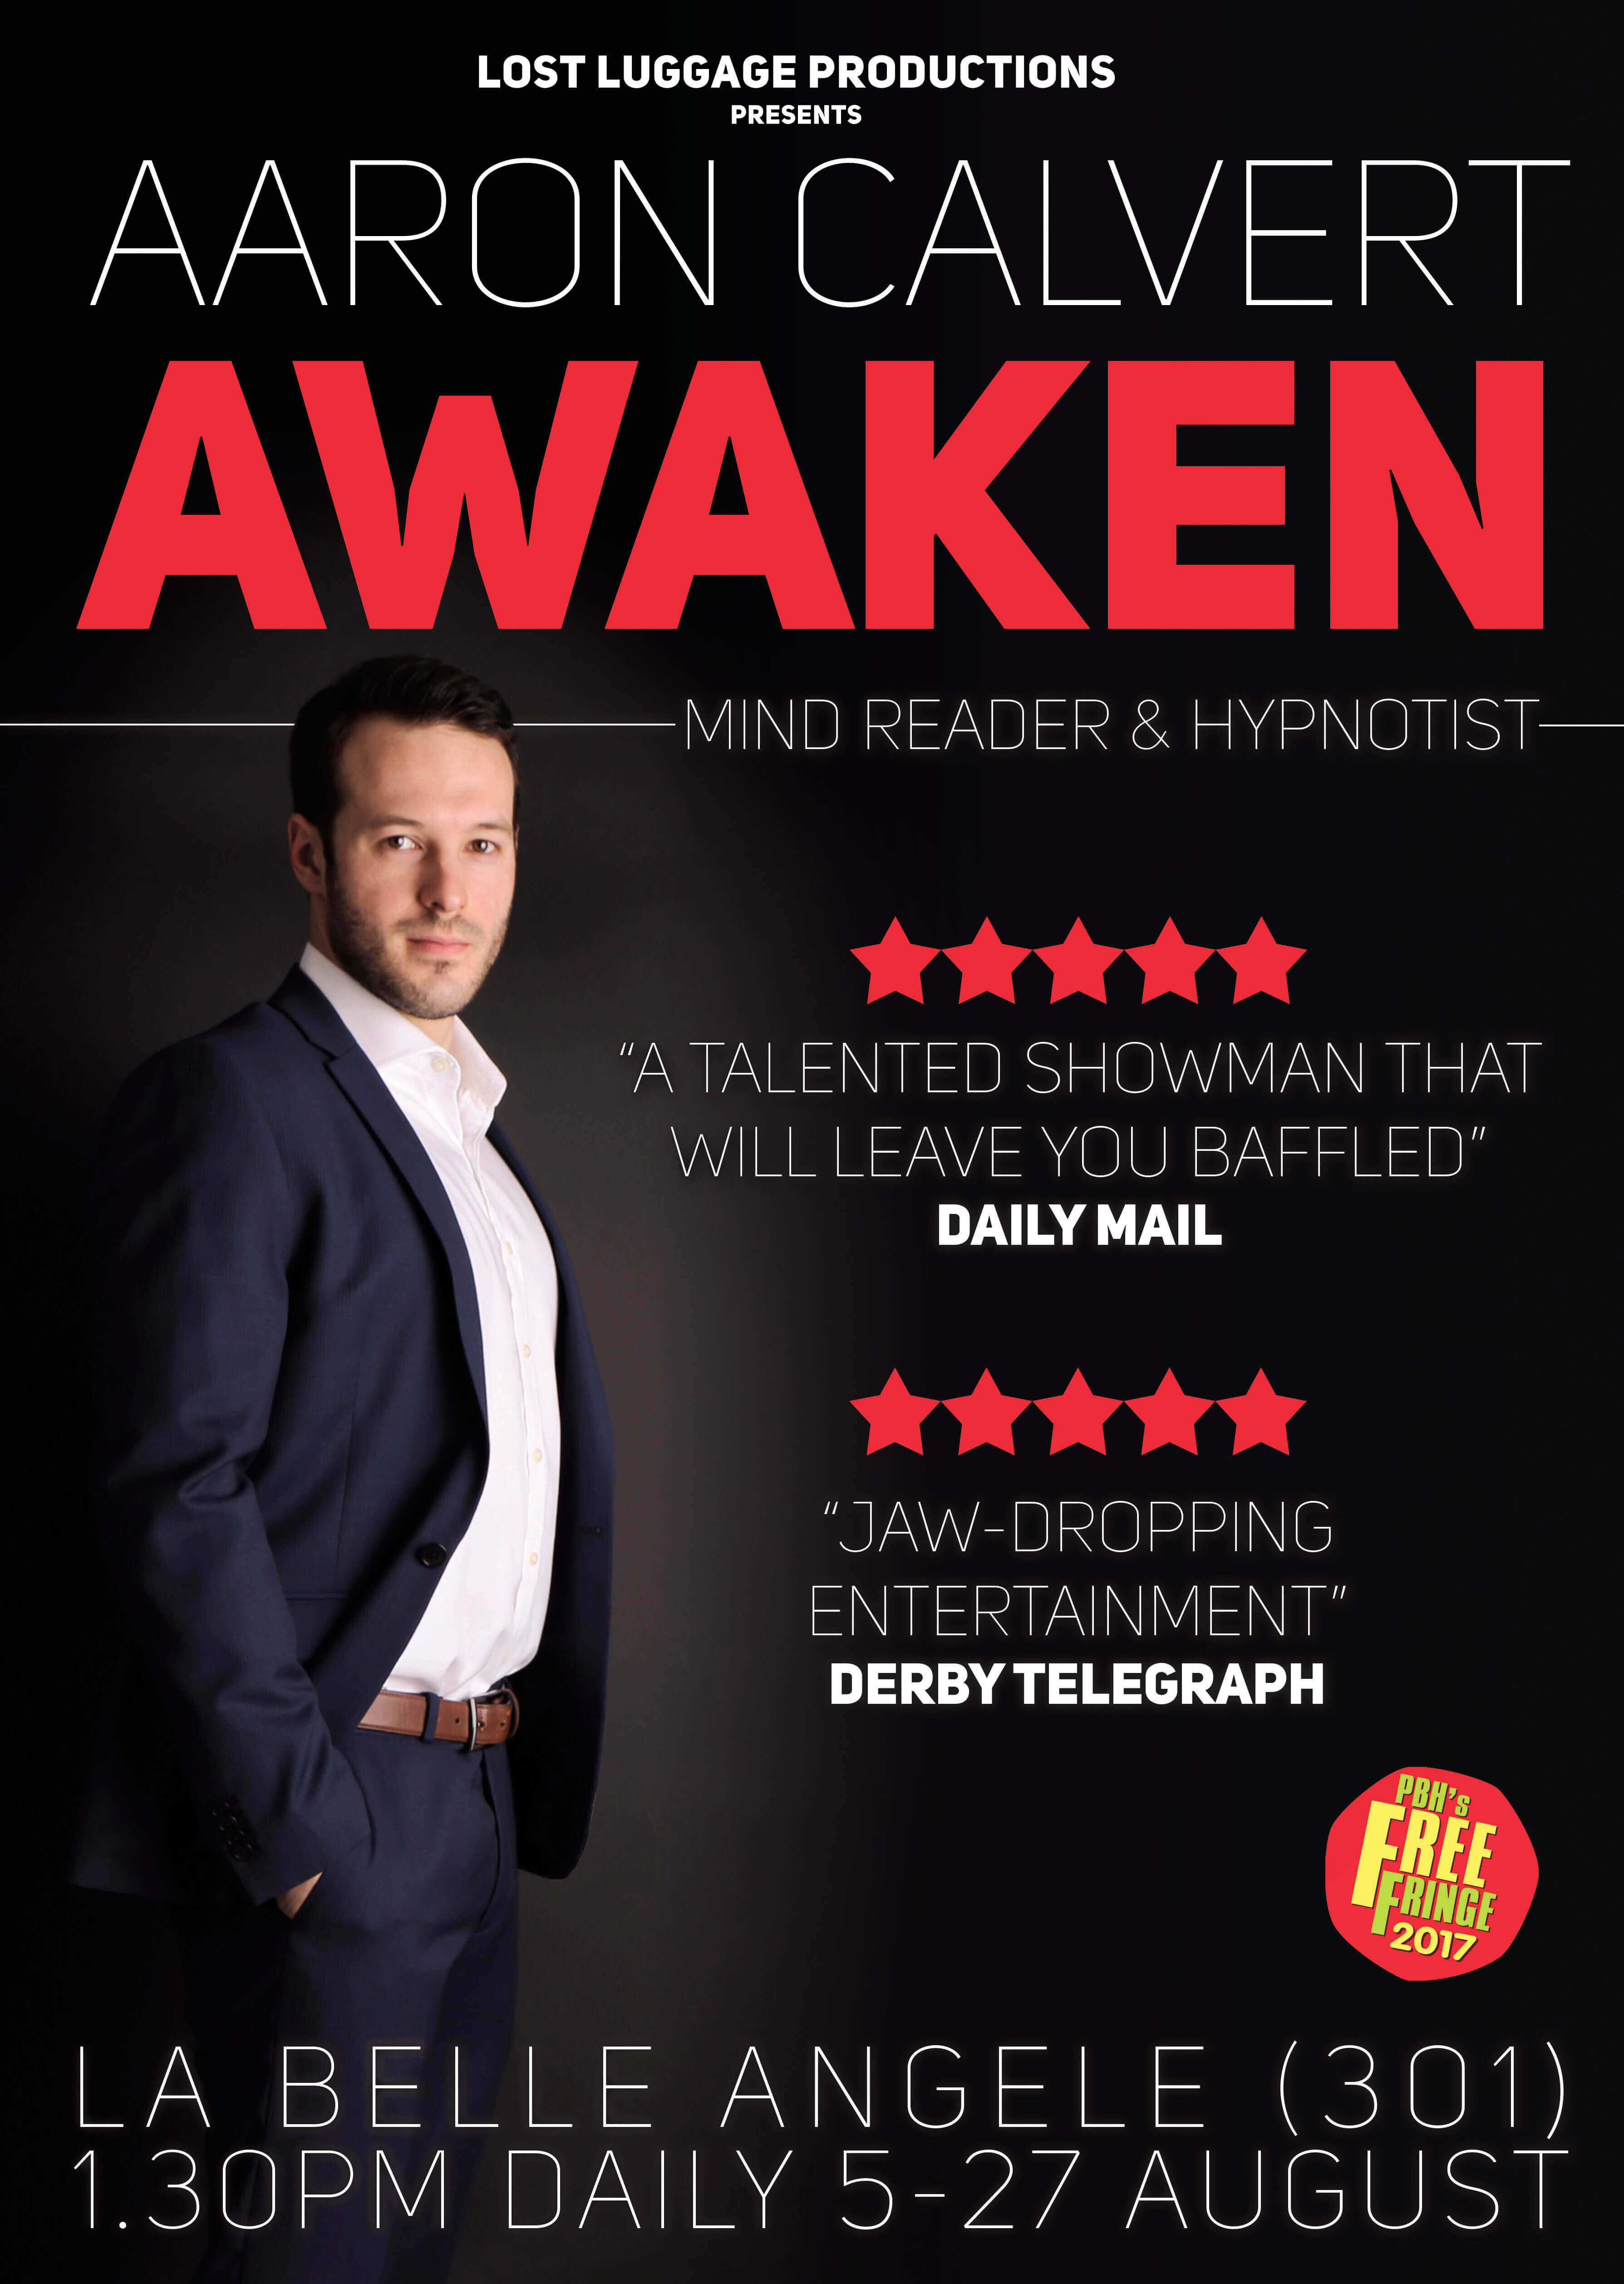 Aaron Calvert Awaken edinburgh fringe magic show poster